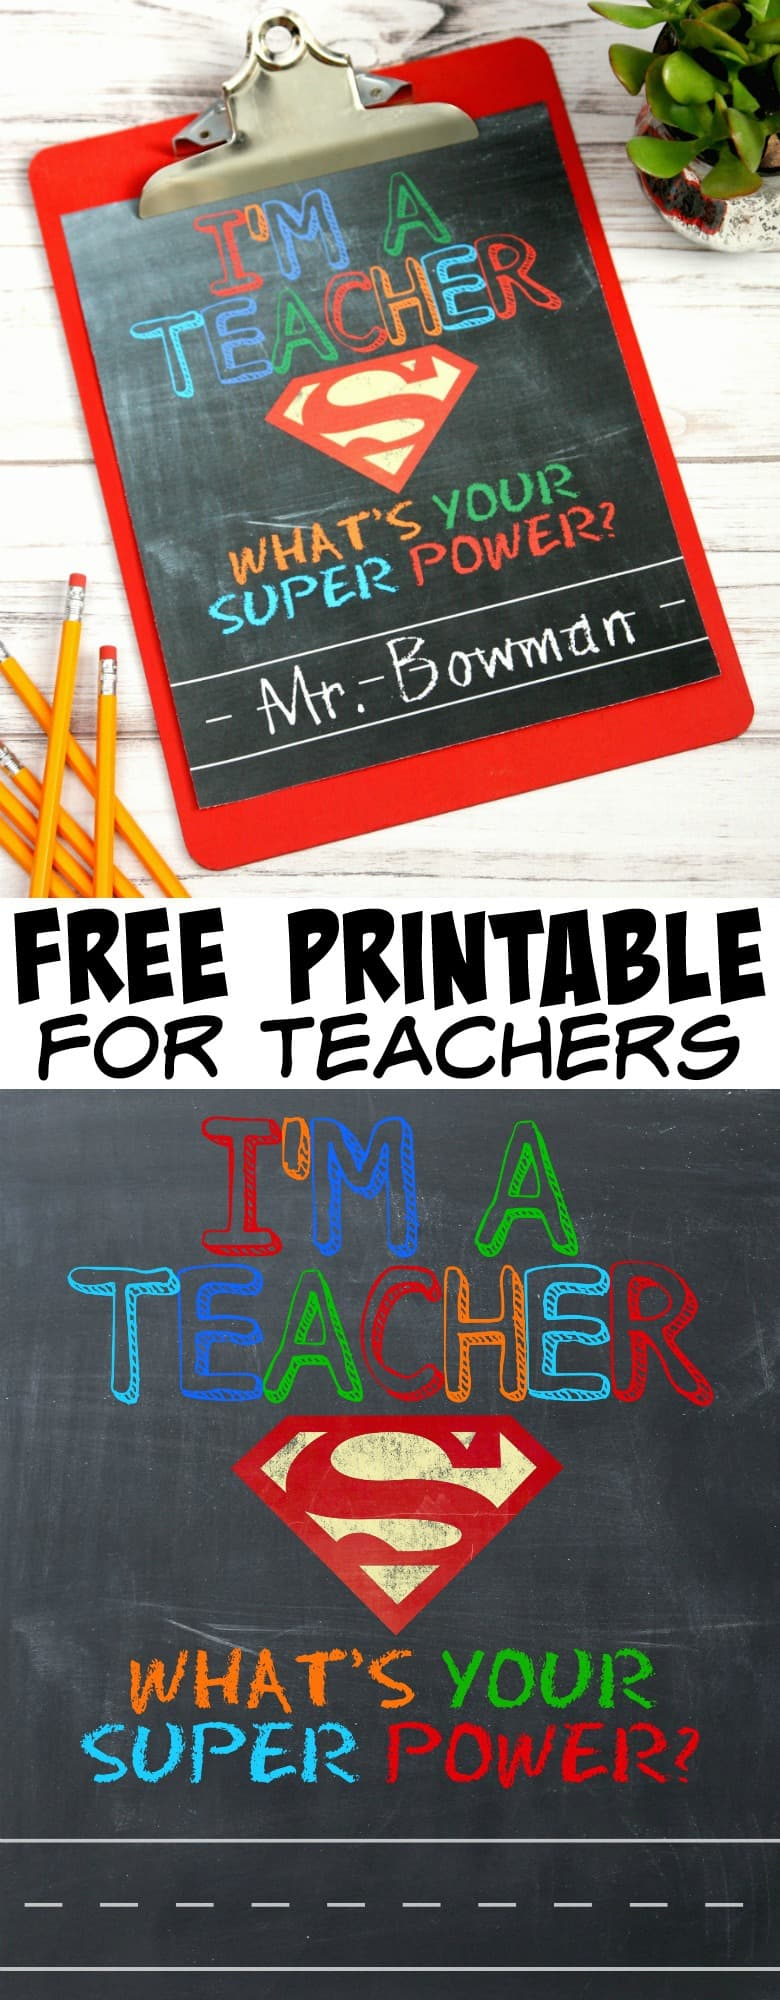 Free Printable for Teachers